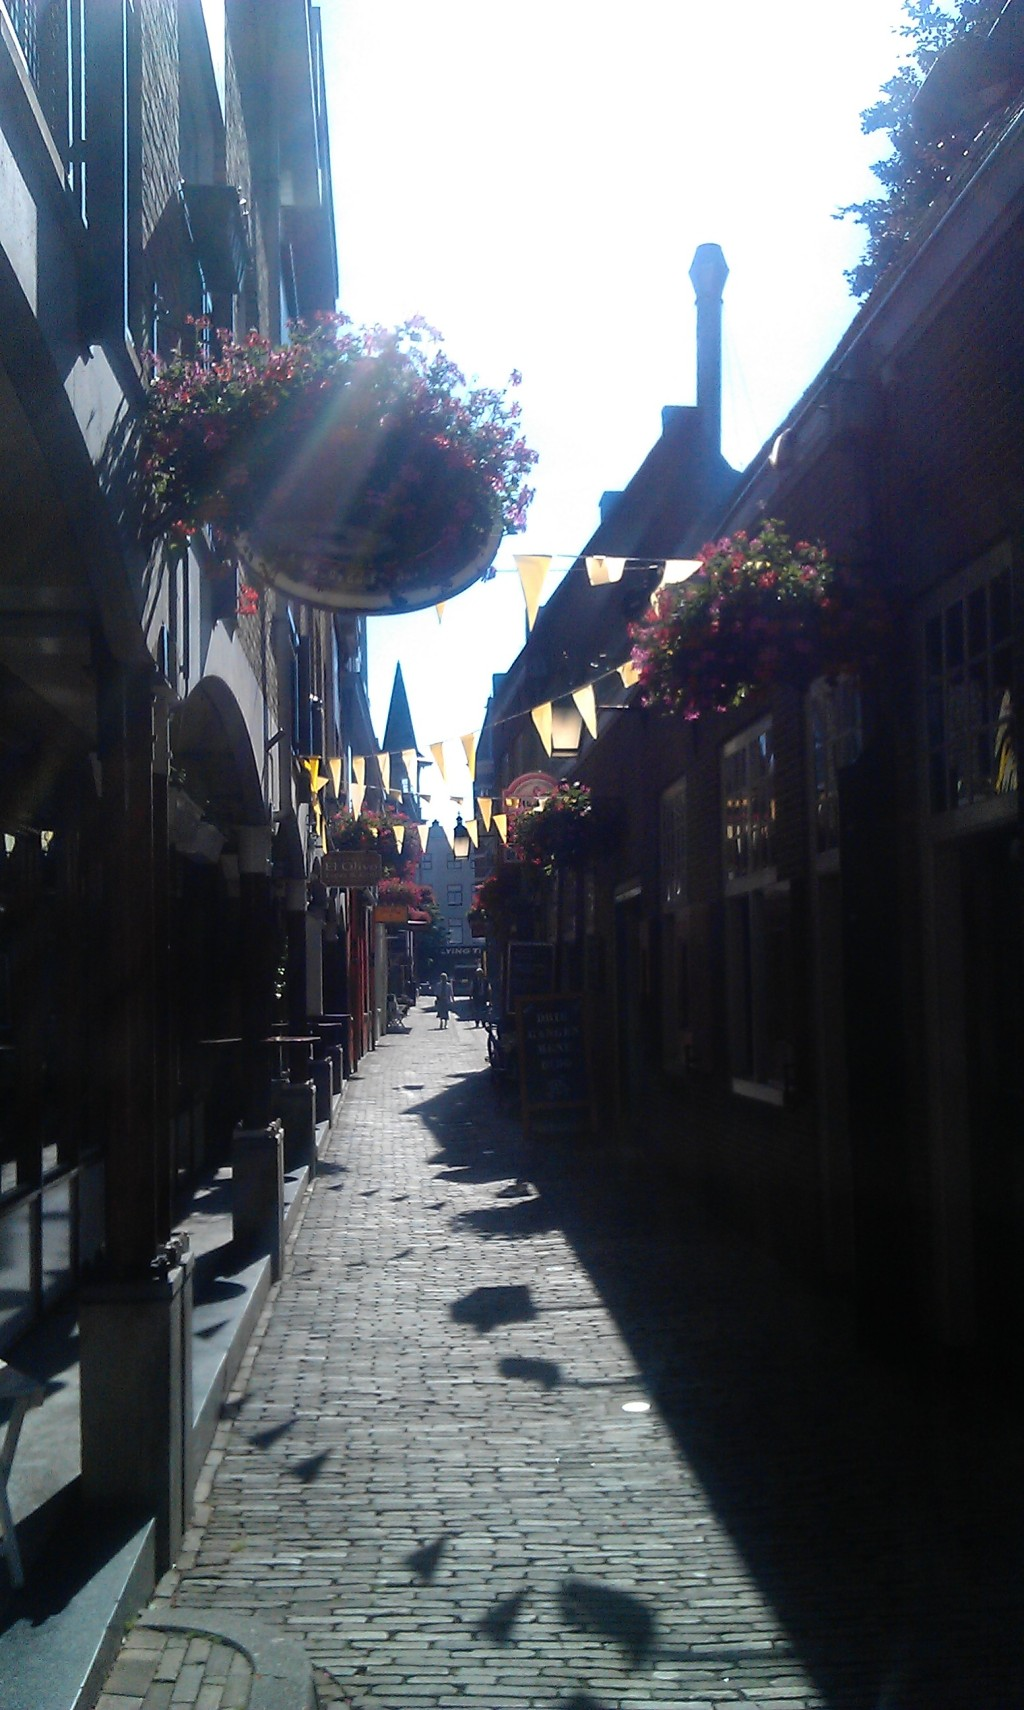 Flowers, flags and sunshine - very Dutch and heel gezellig!